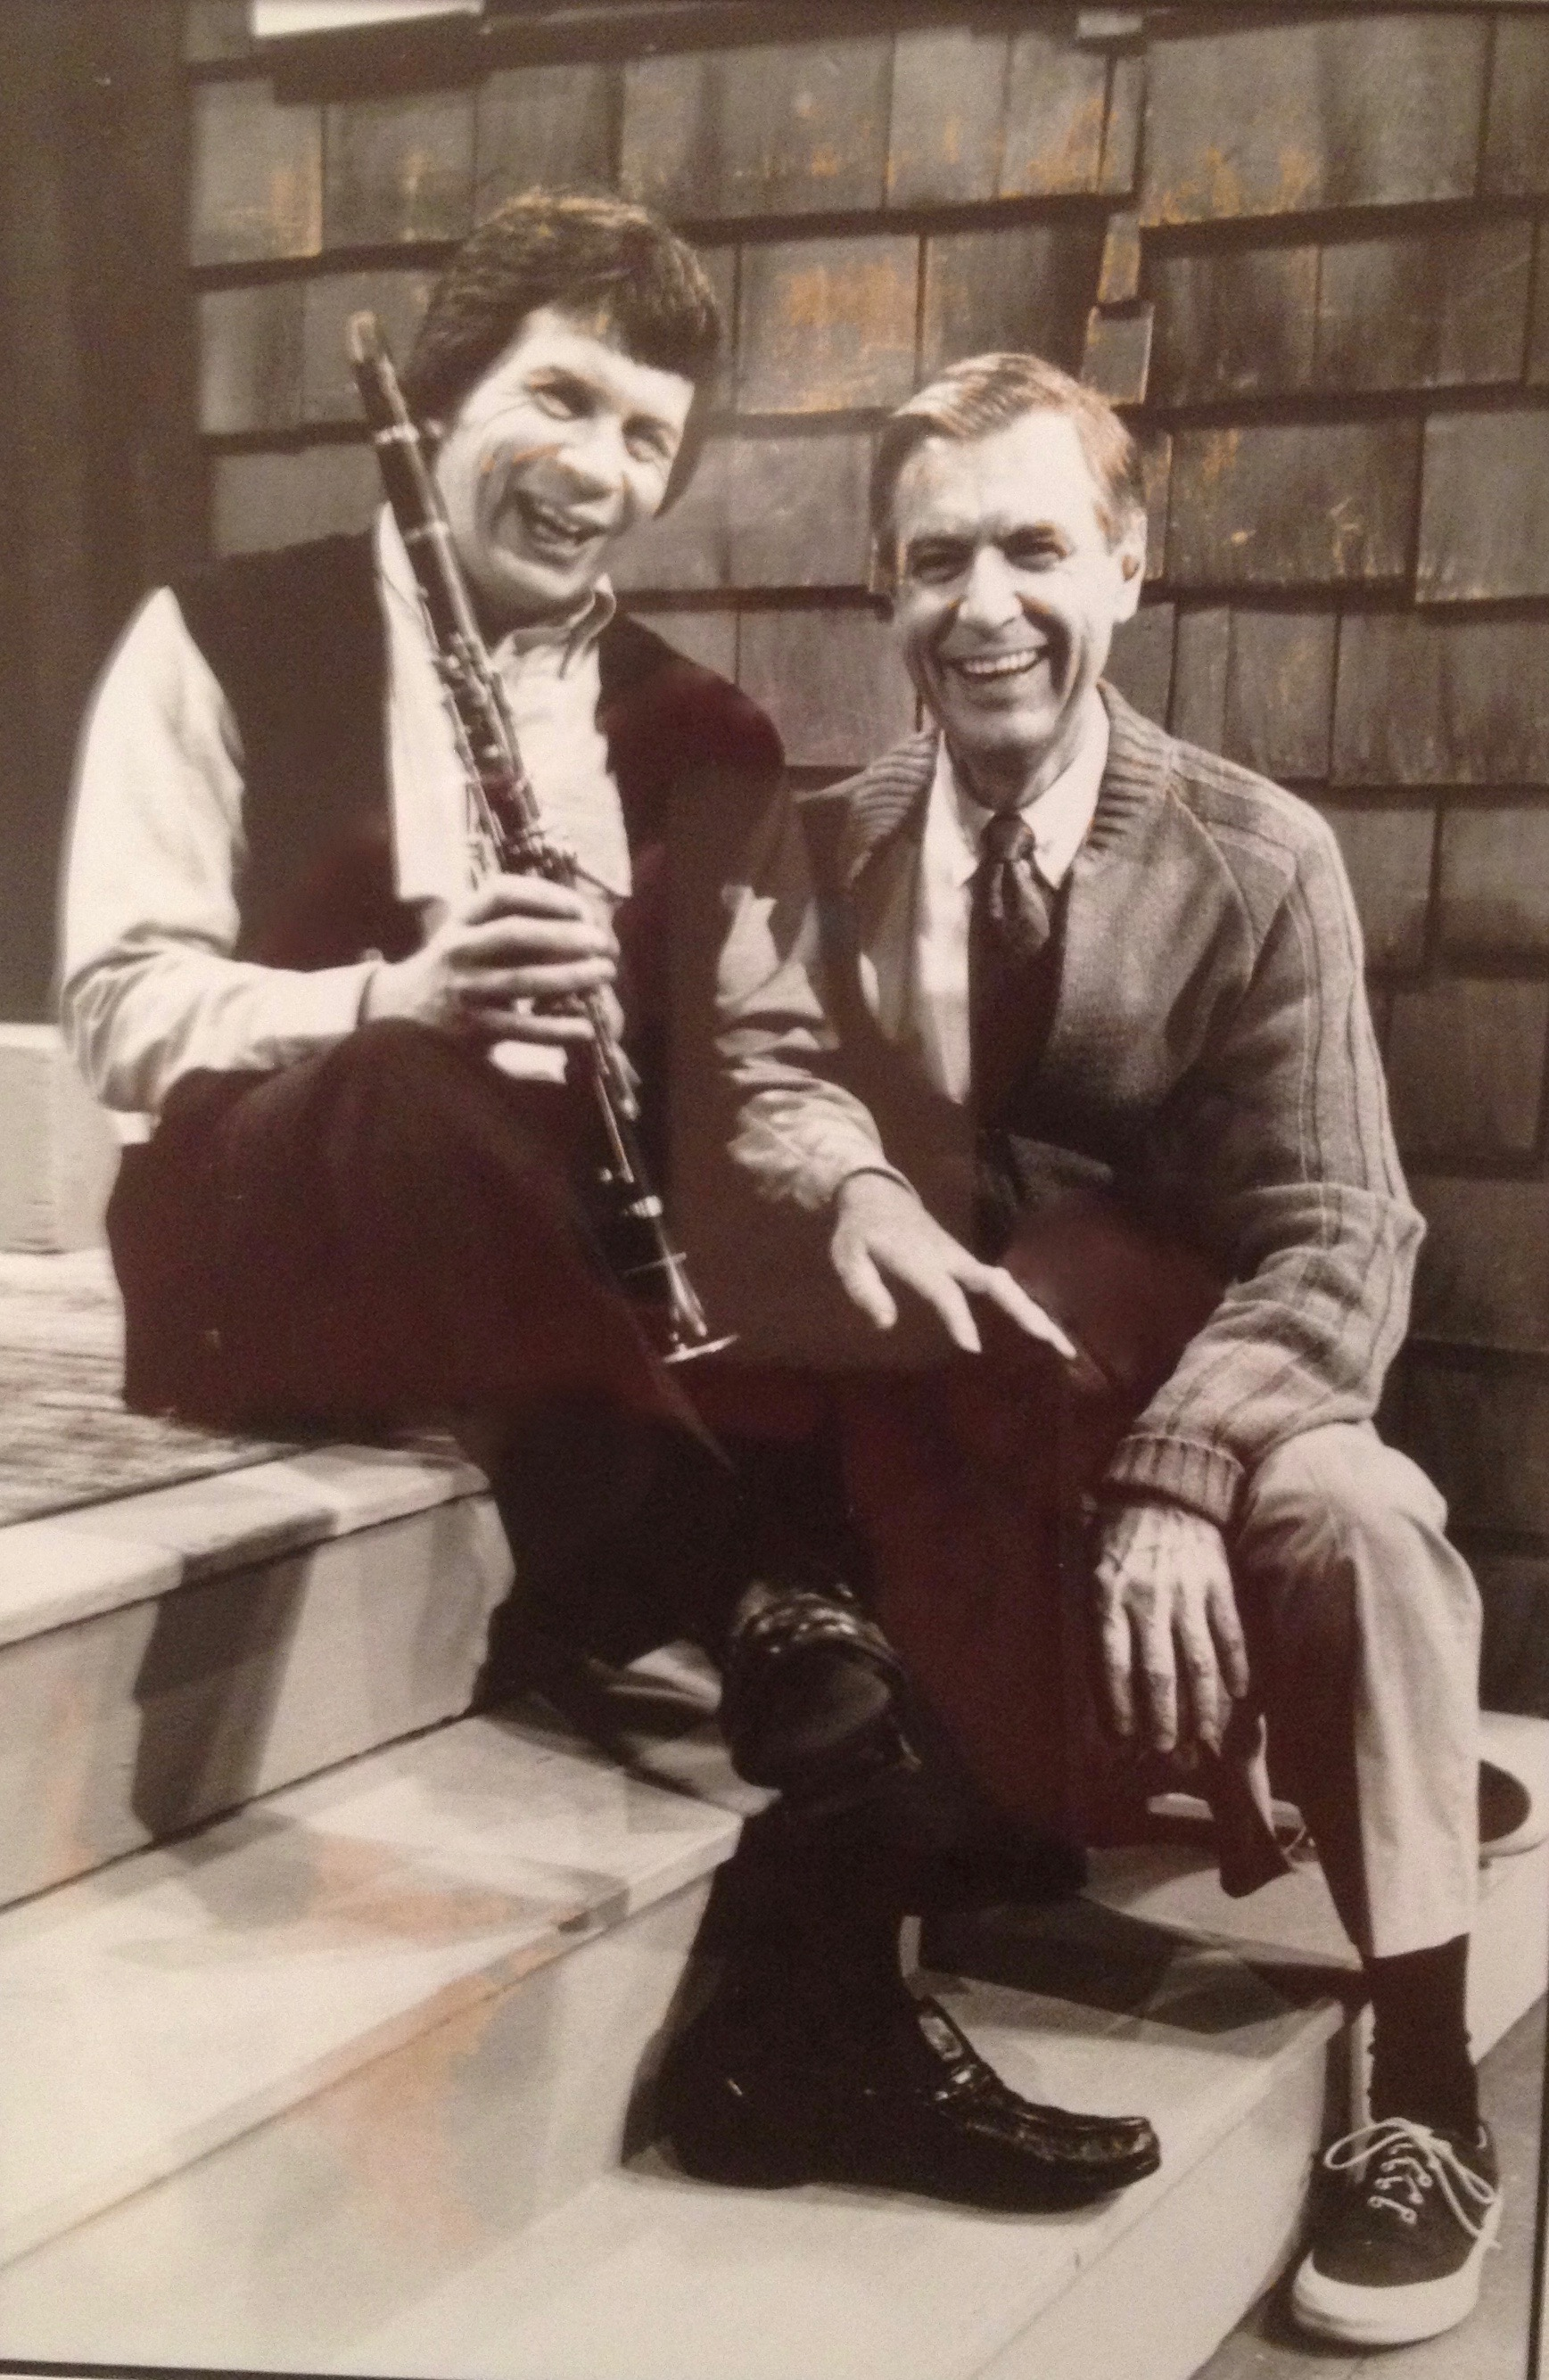 Richard Stoltzman and Fred Rogers